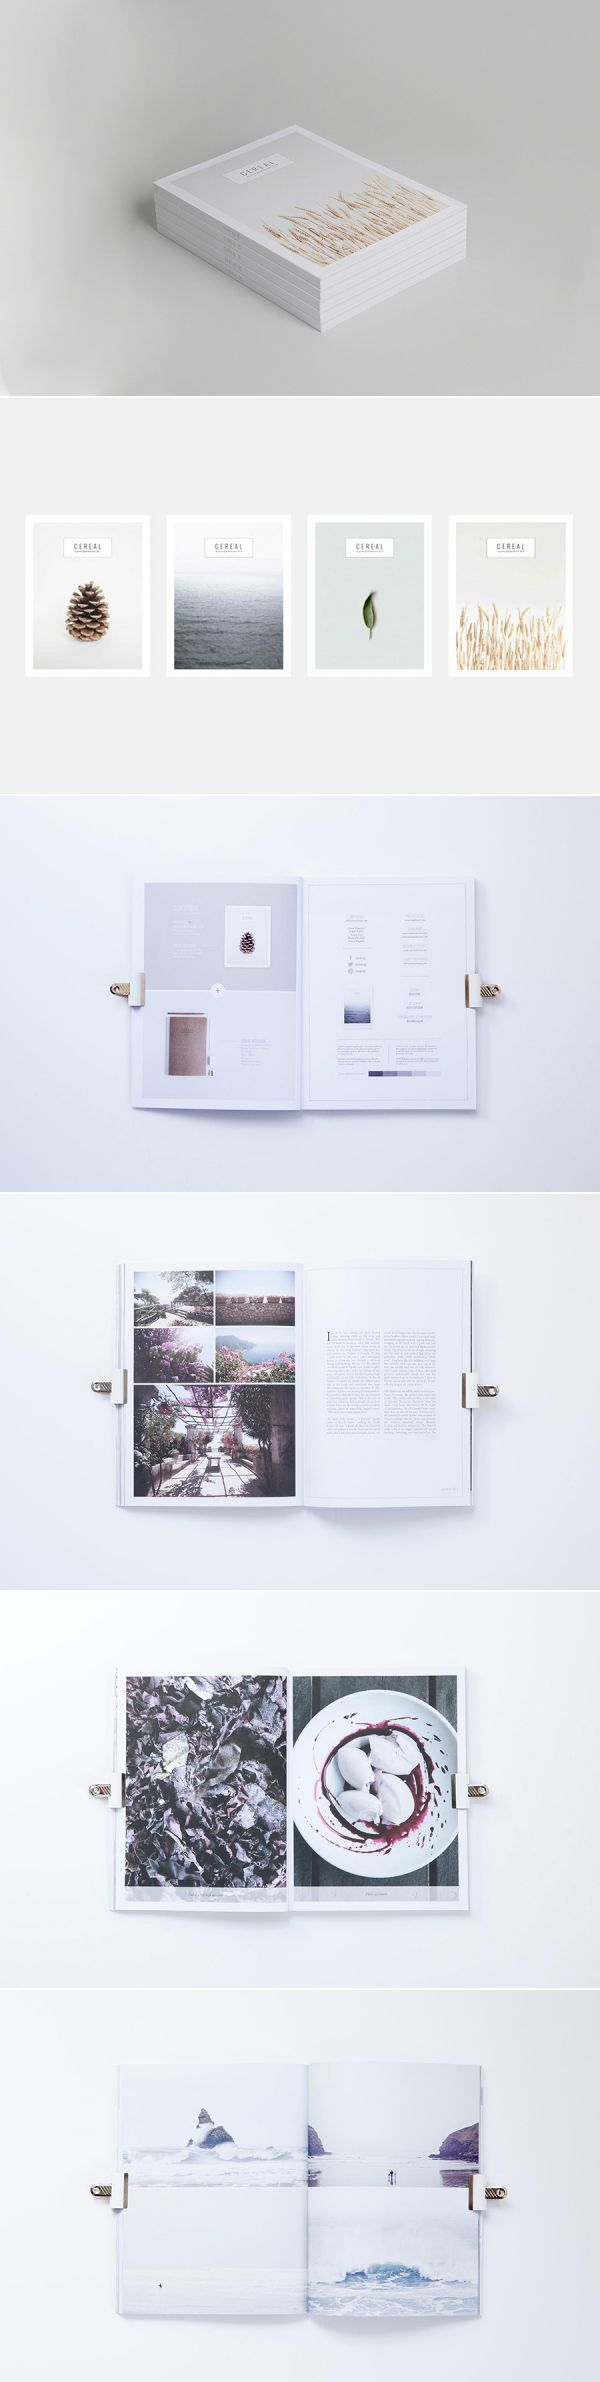 Very minimal photography I think this is too stark and unapproachable but I think their photography style could work: